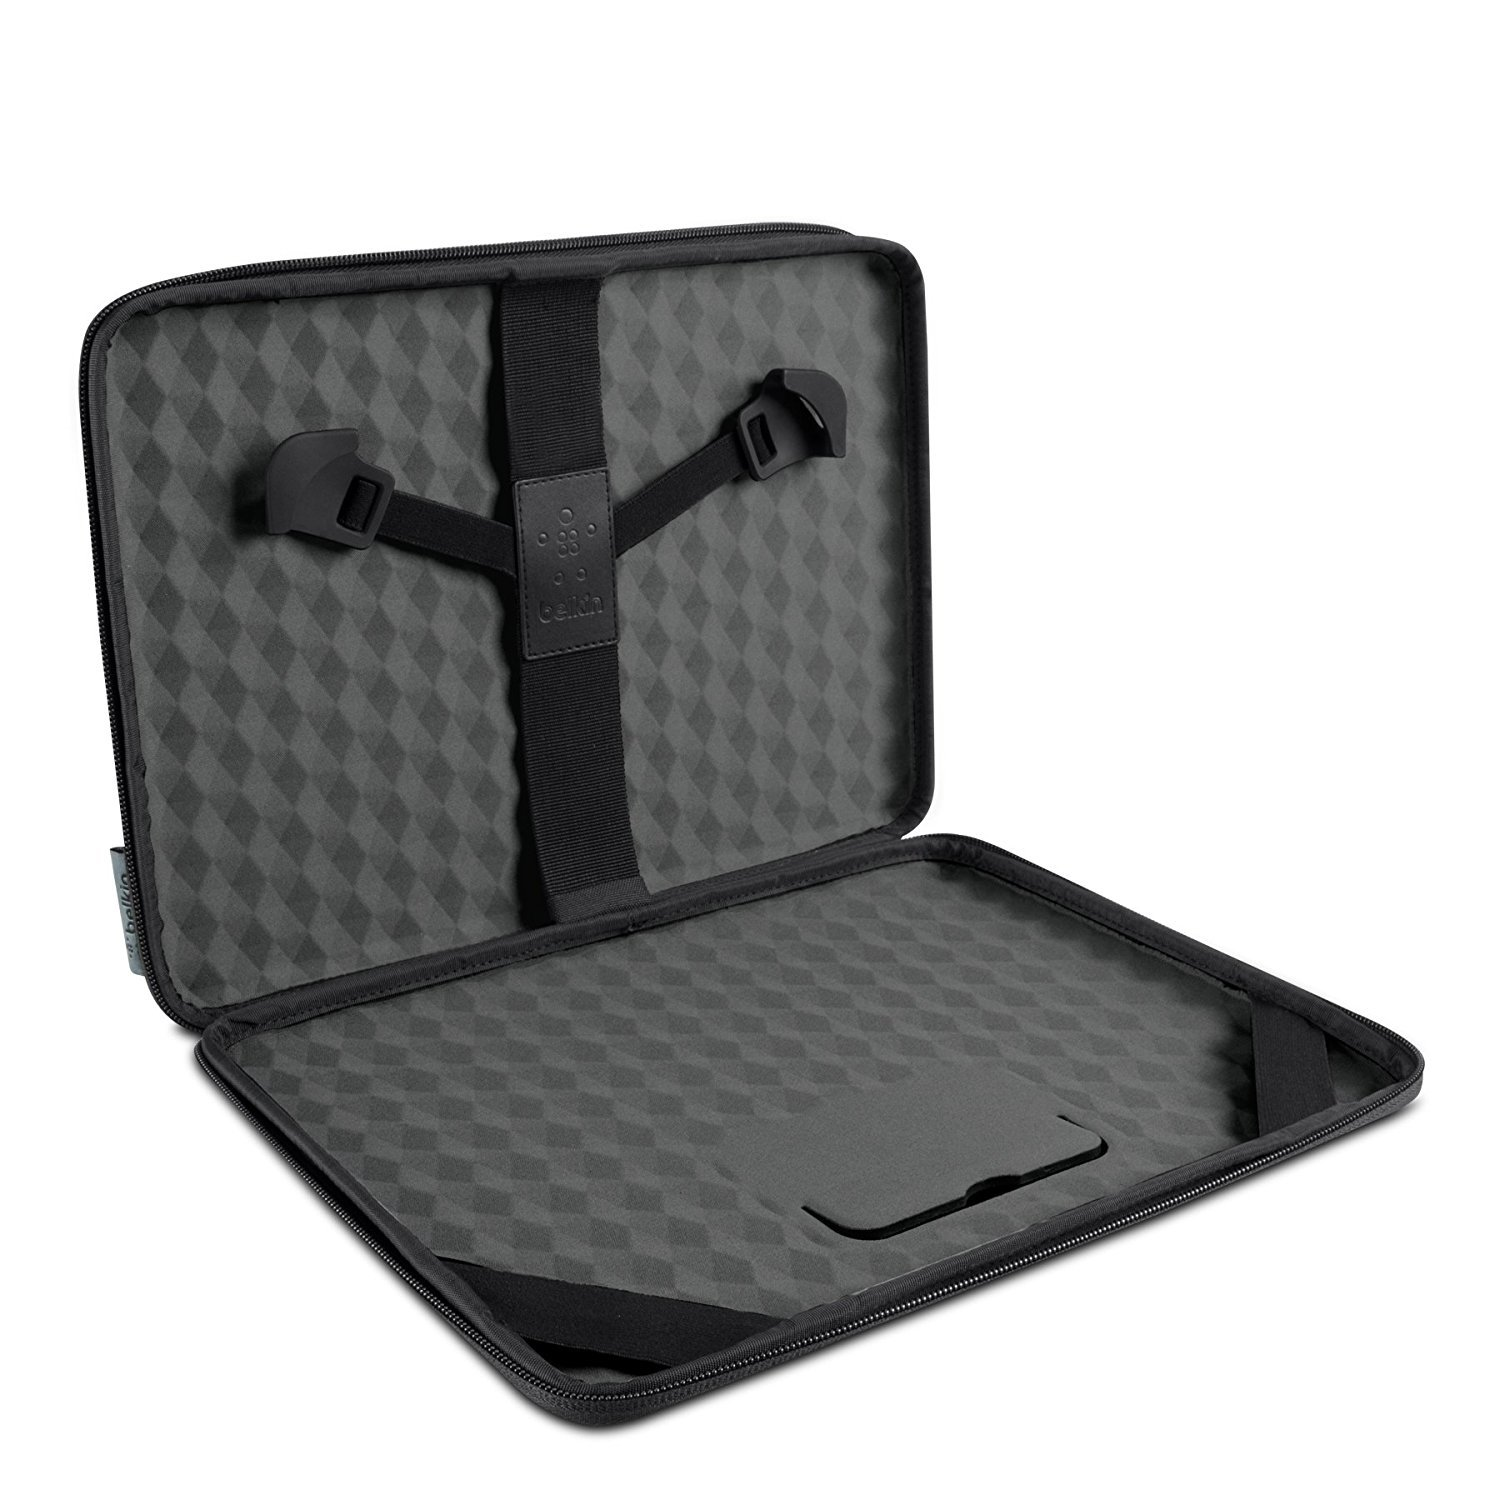 "Belkin Air Protect Always-On Sleeve 11"" for iPad Pro, Chromebooks and Laptops image"